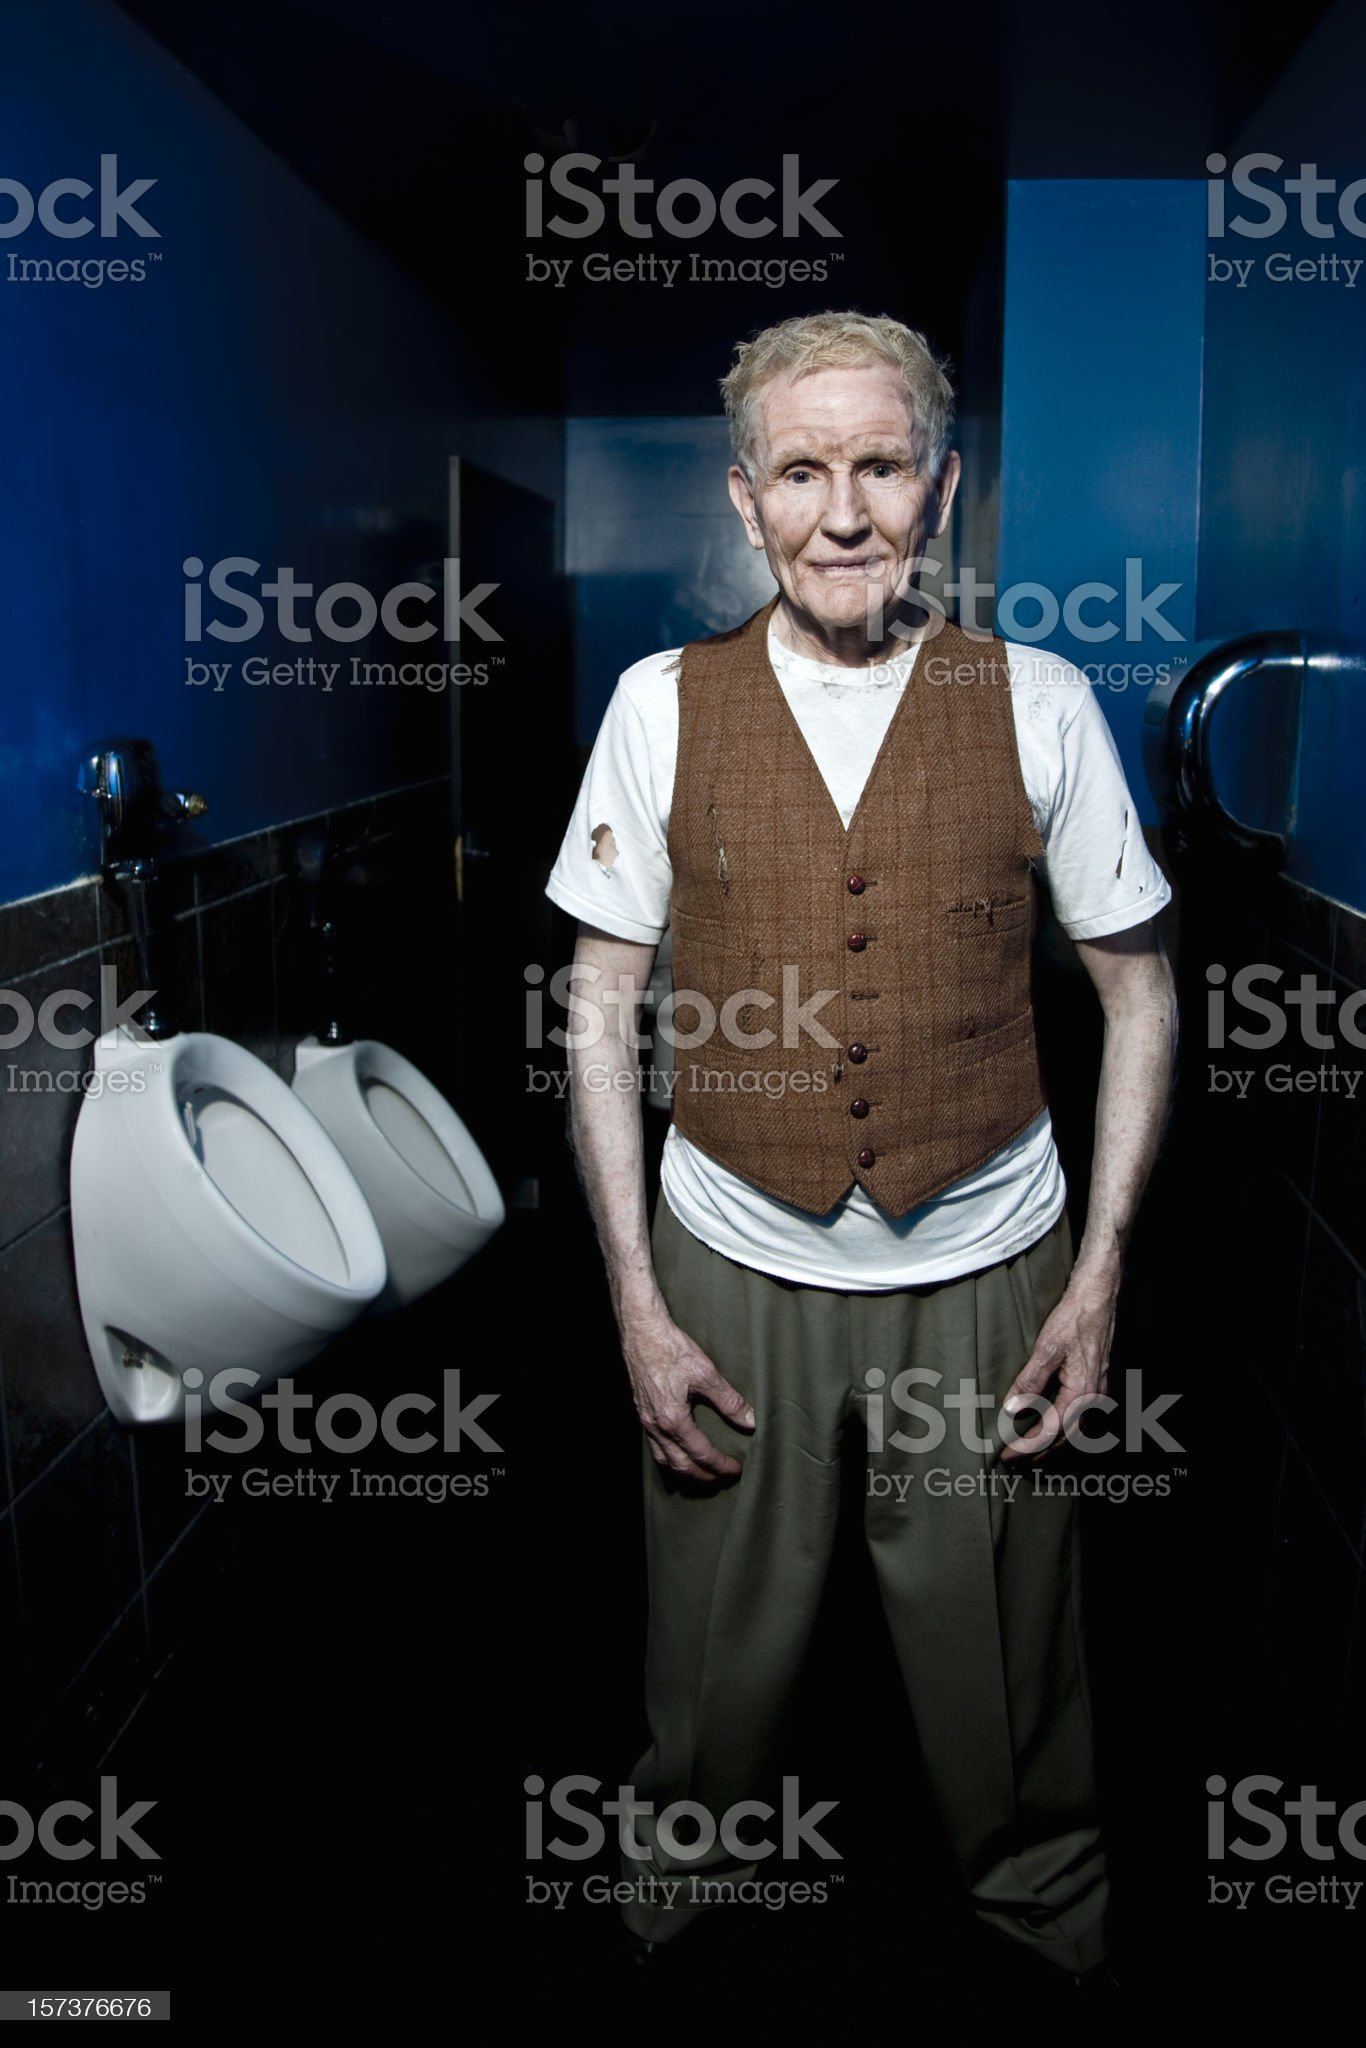 Behind the Scene. royalty-free stock photo